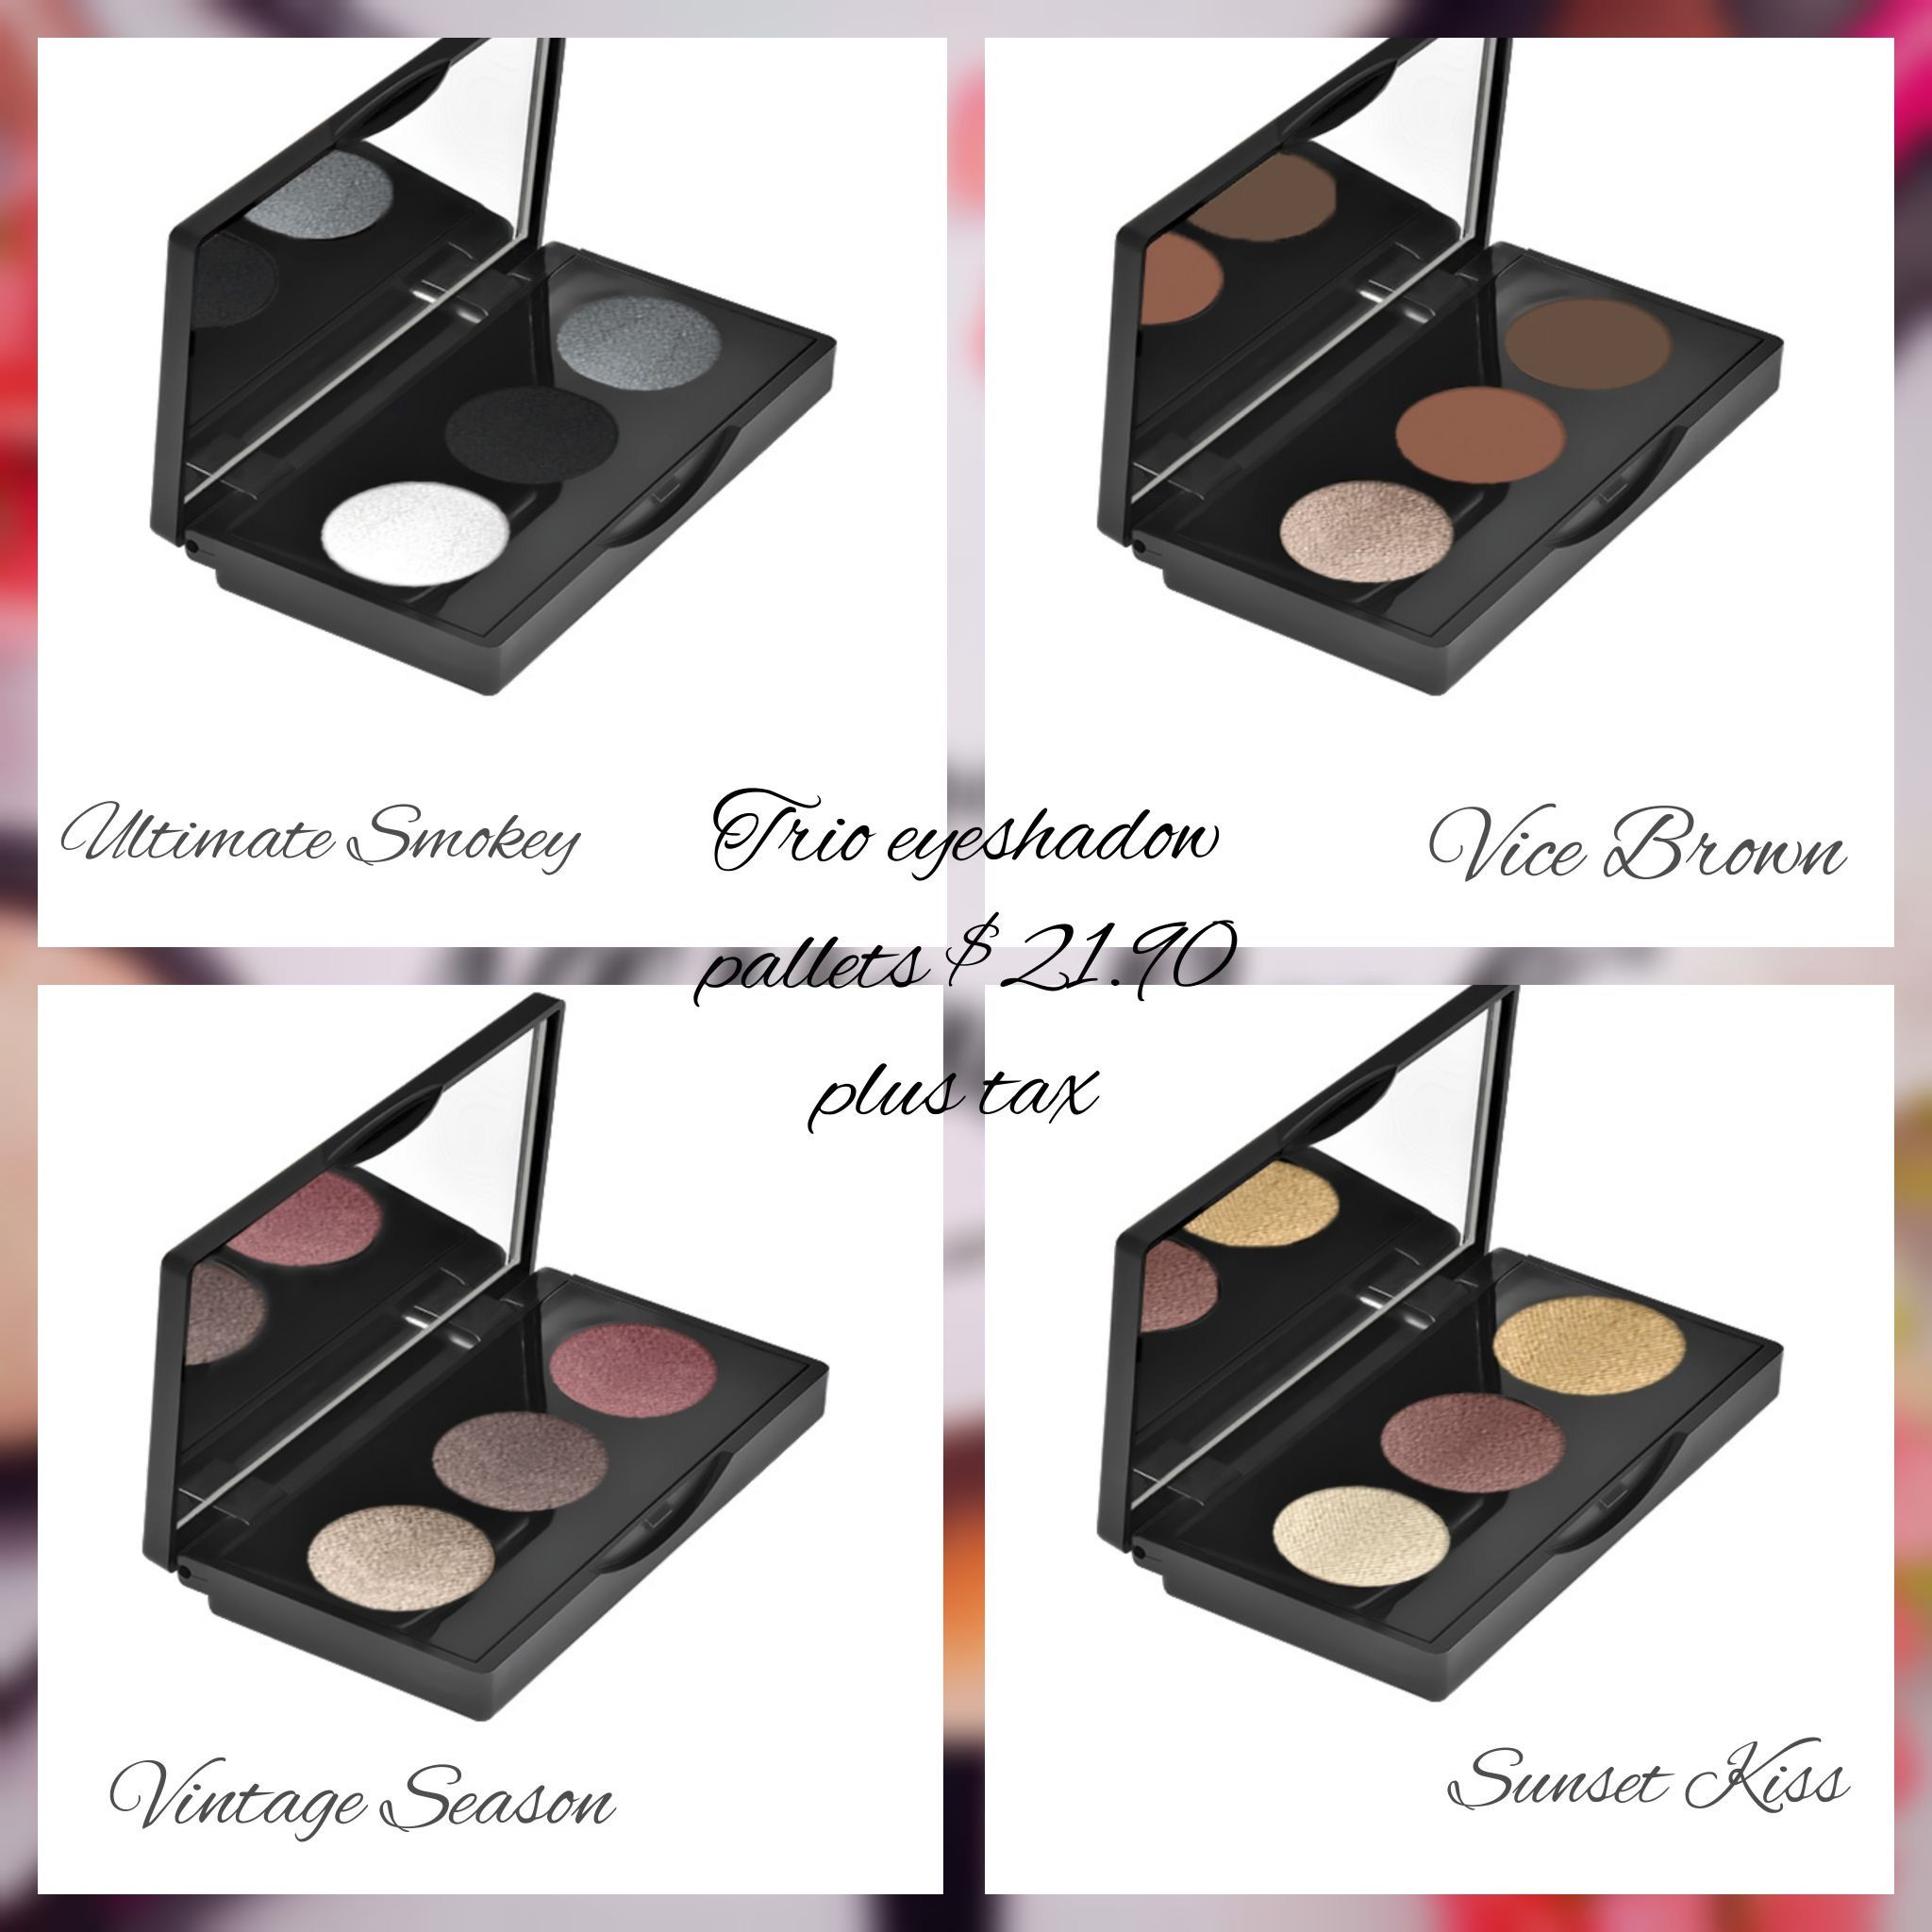 4 Different Palettes To Choose From! These Are Compact For